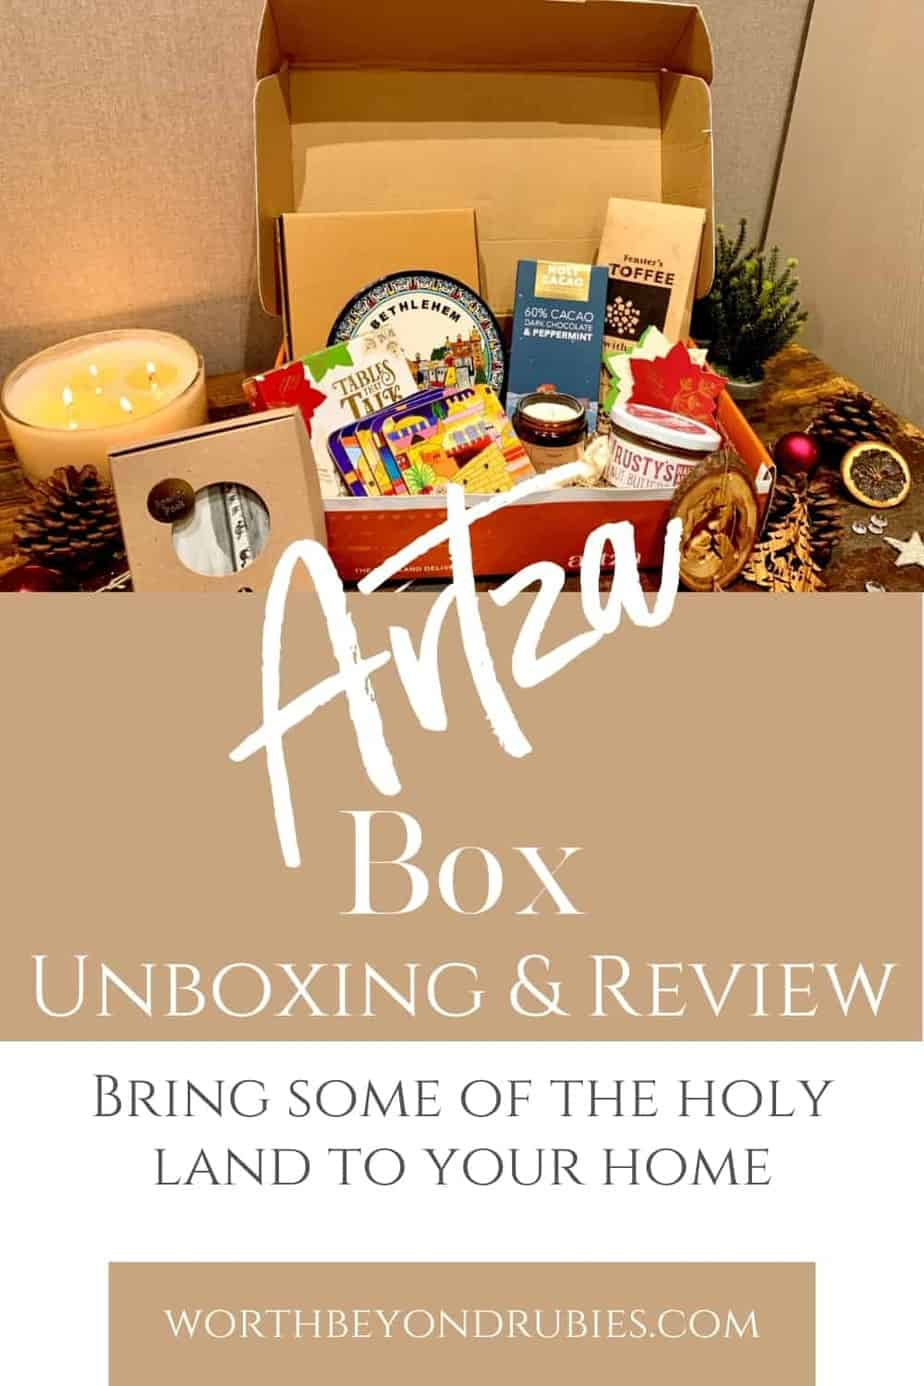 An image of the Artza Box Bethlehem subscription box and text that says Artza Box Unboxing and Review - Bring Some of the Holy Land Home